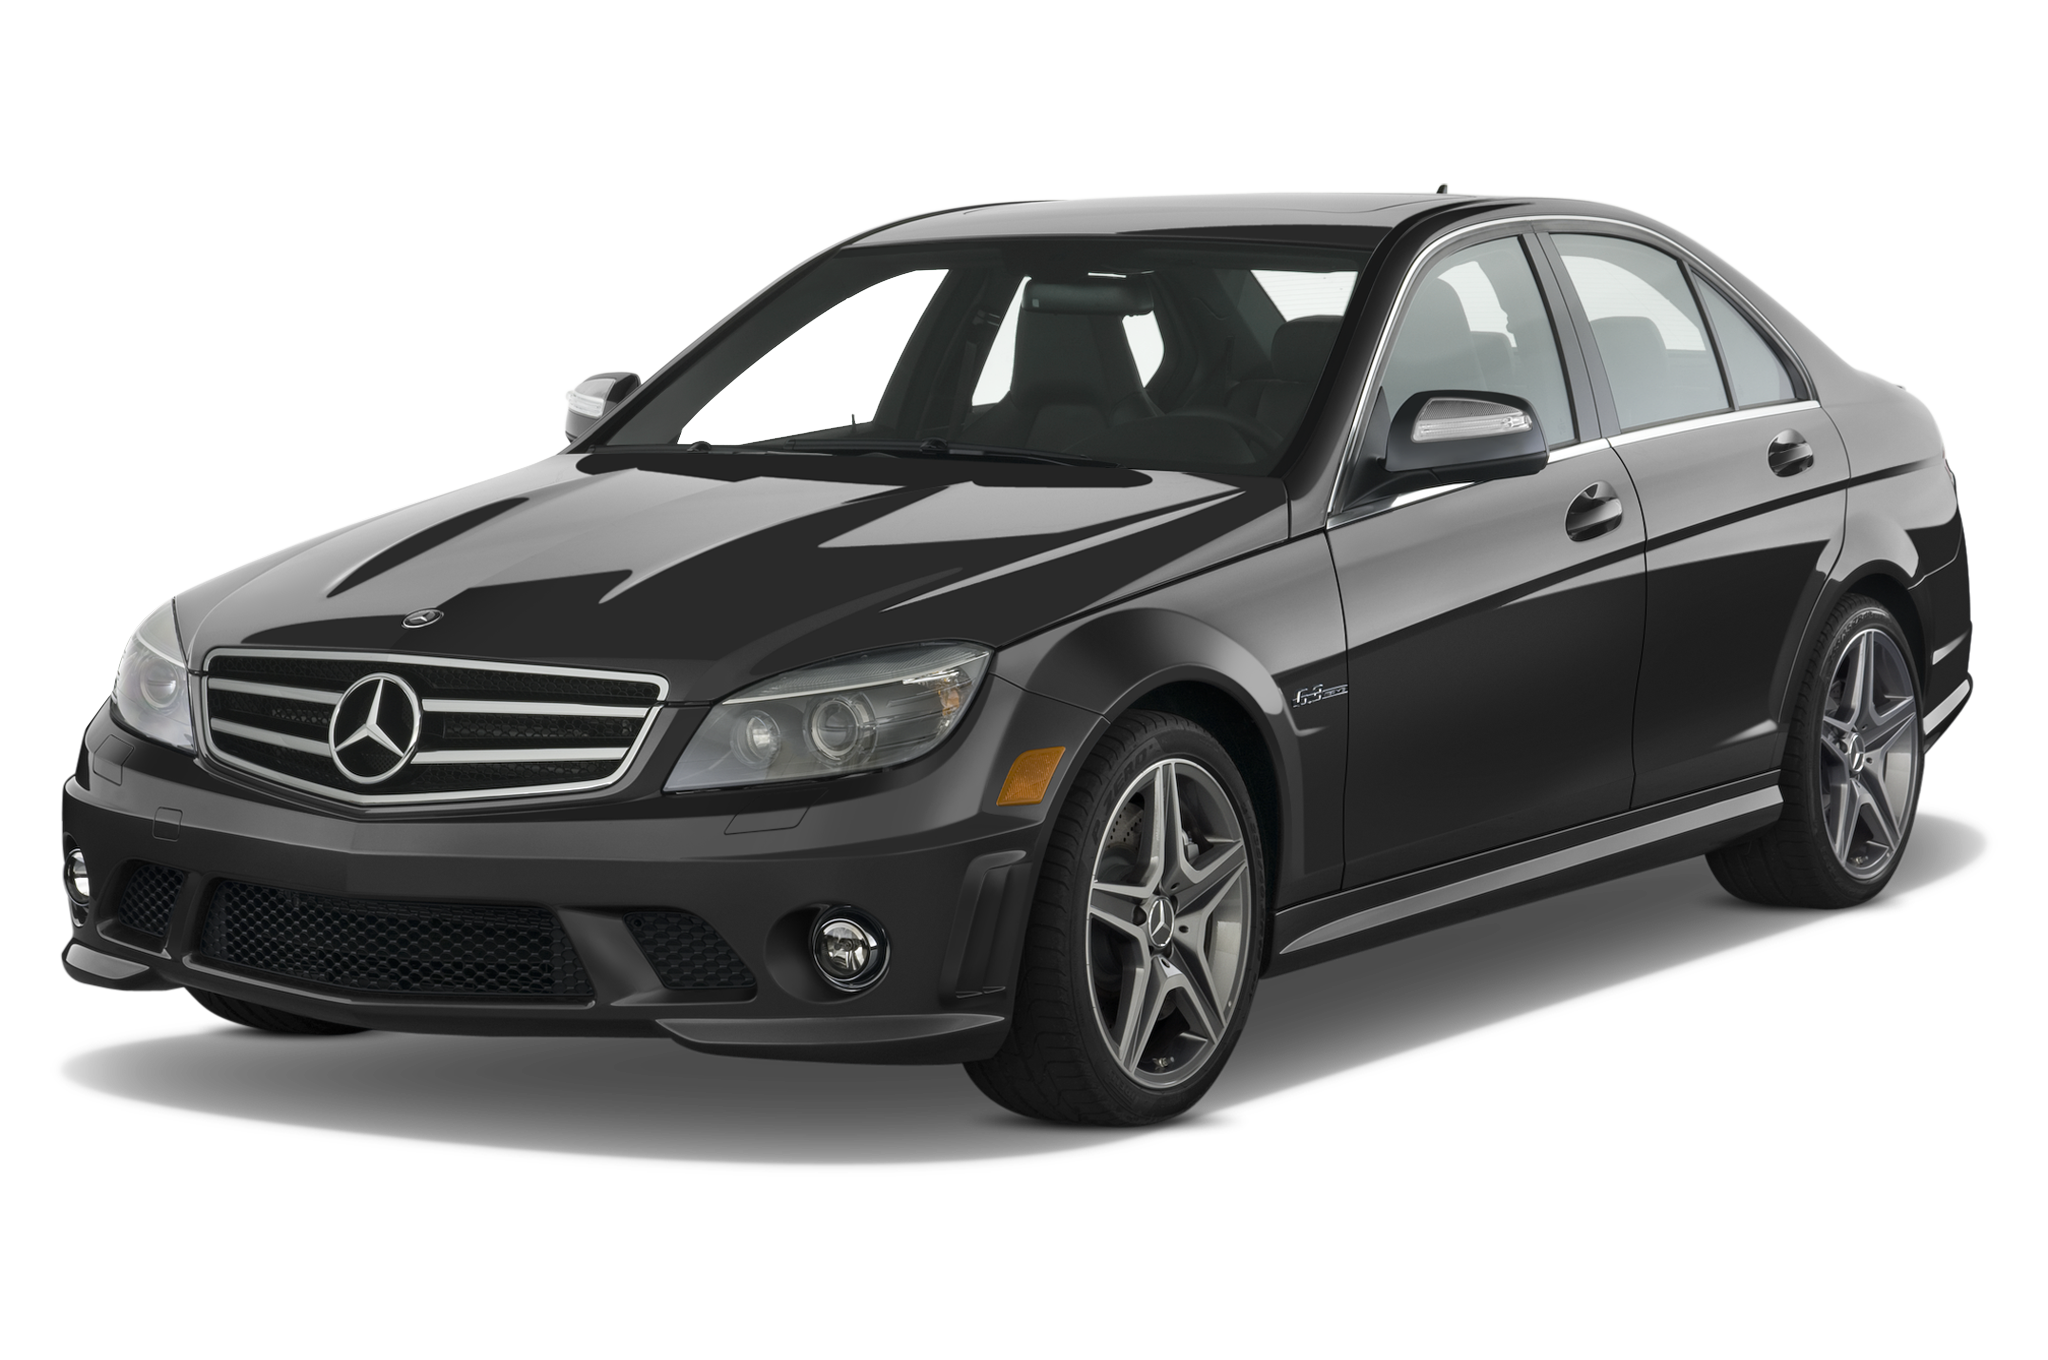 85 000 mercedes benz c class e class models recalled with for Mercedes benz c class models